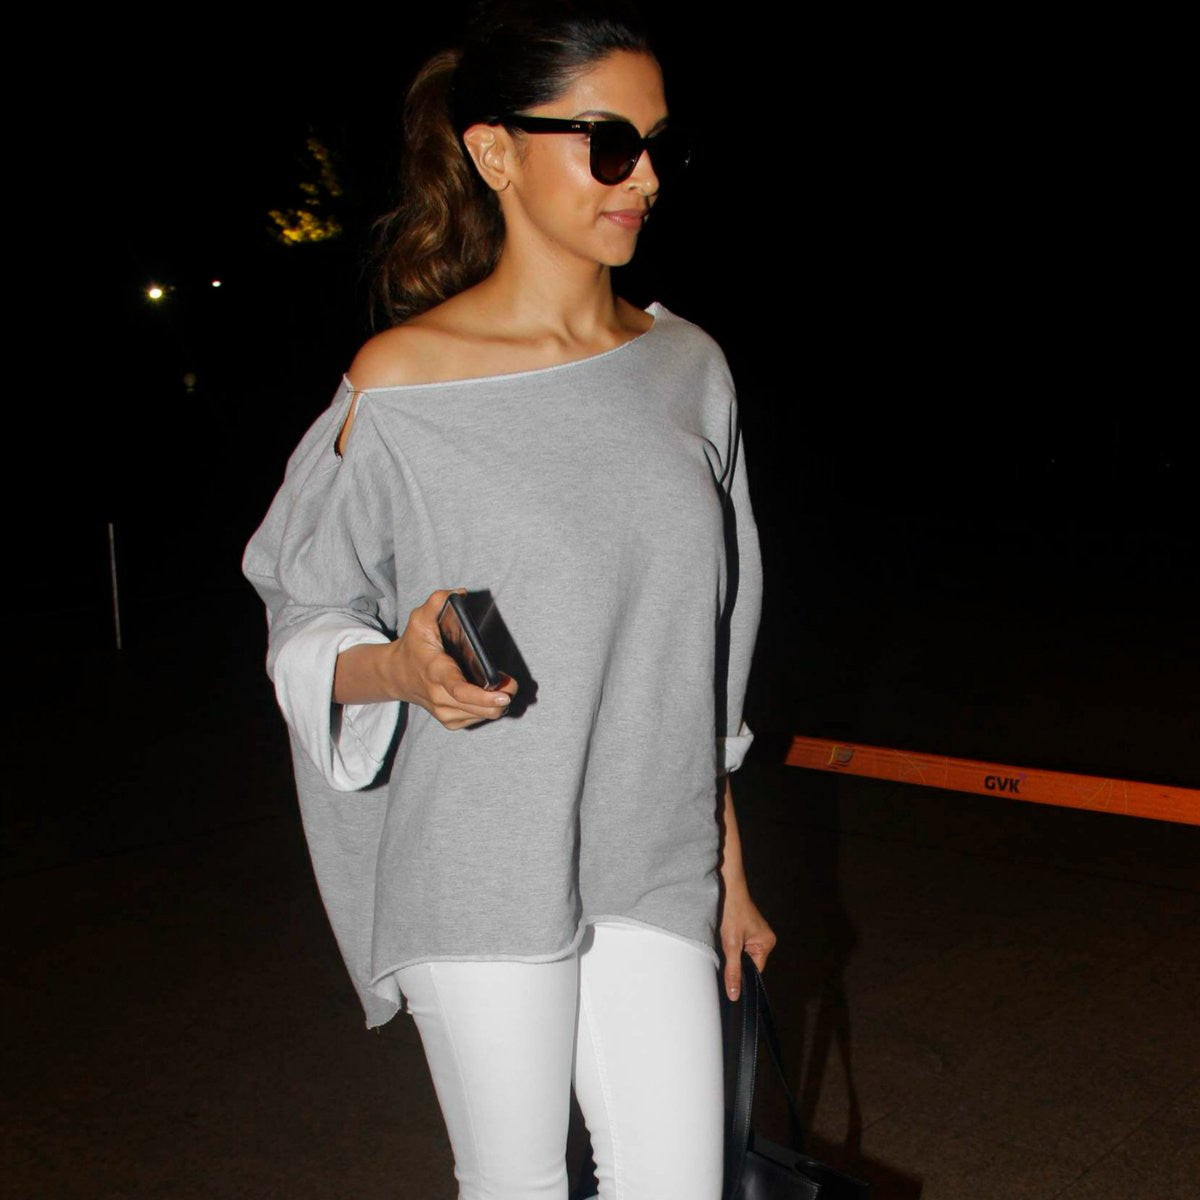 Deepika Padukone Was Spotted At JFK Airport